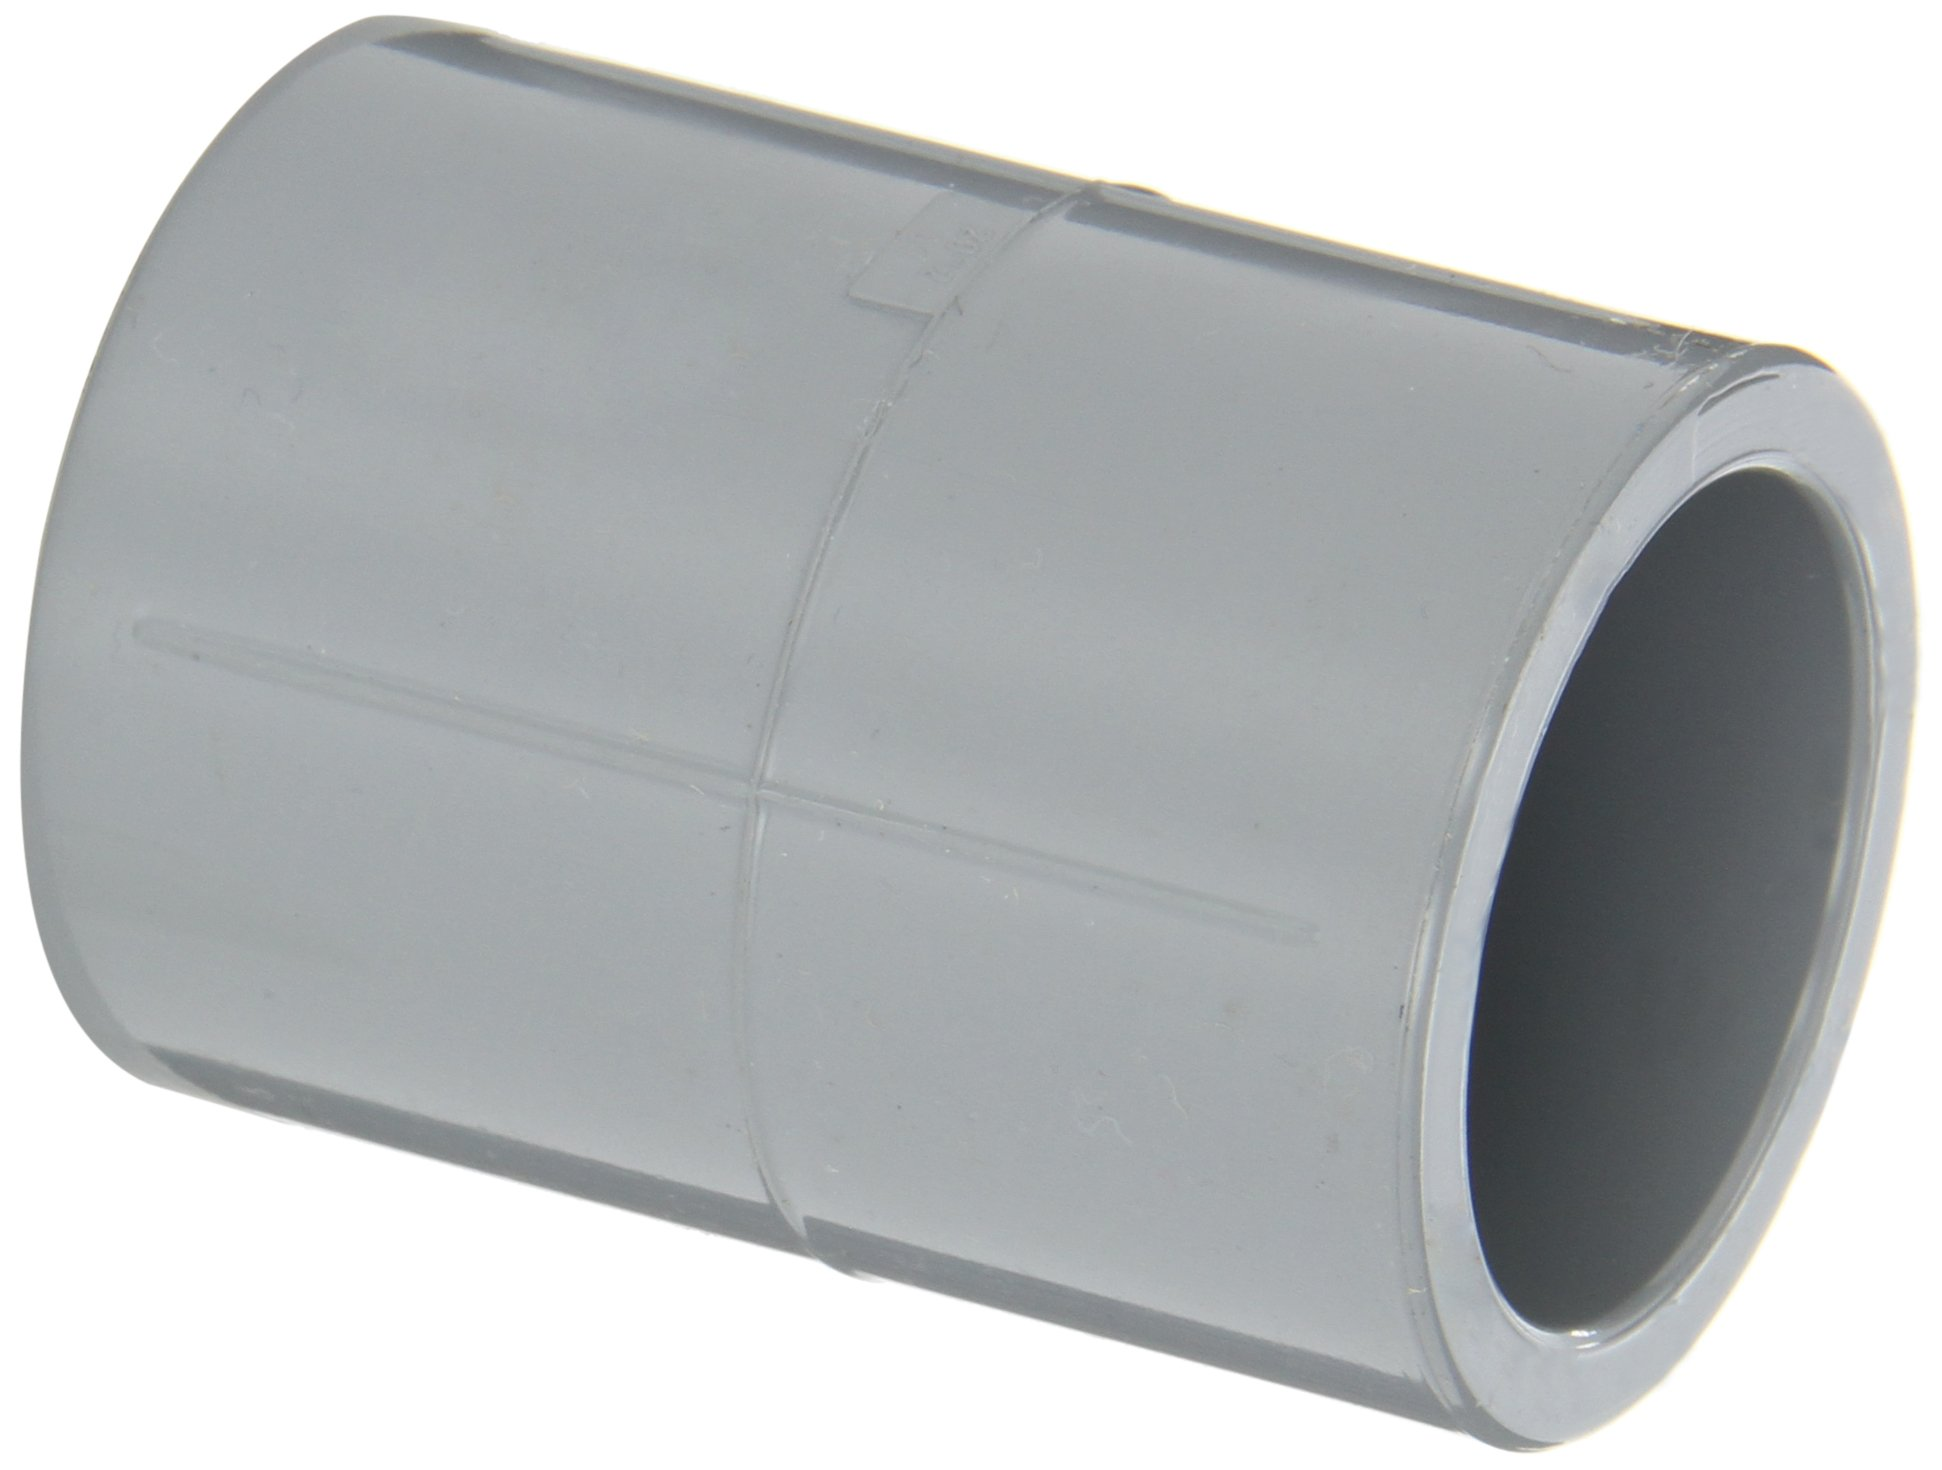 1 Slip Socket GF Piping Systems CPVC Pipe Fitting Schedule 80 Gray Van-Stone Flange